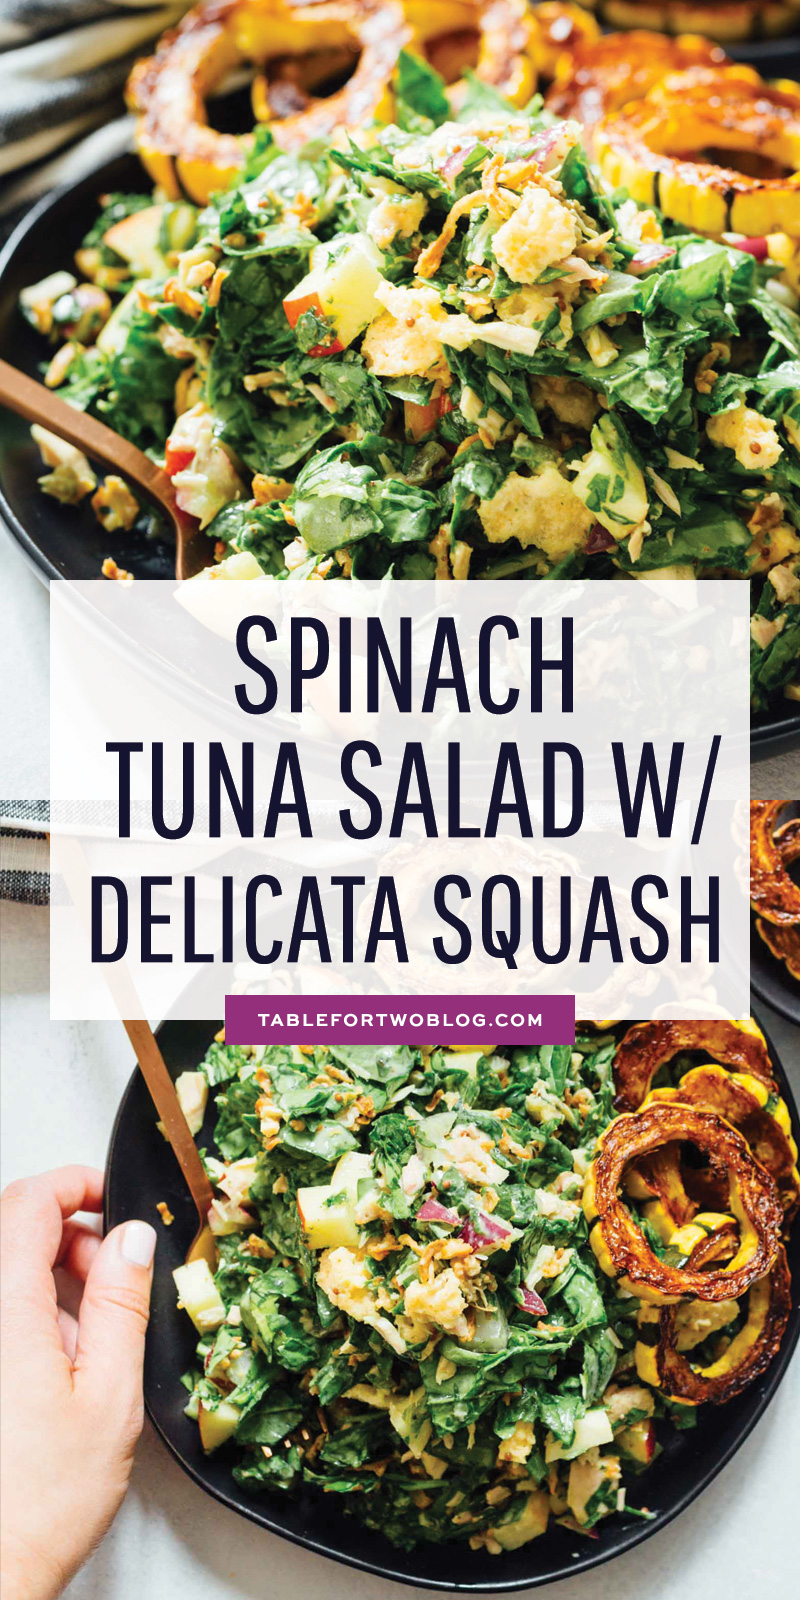 A spinach tuna salad topped with roasted delicata squash is a heavenly combination! The delicata squash gives it a unique yet distinct sweetness but it also adds volume to make this salad hearty and filling! #salad #saladrecipe #healthyeats #healthysalad #saladbowl #delicatasquash #tunasalad #tunarecipe